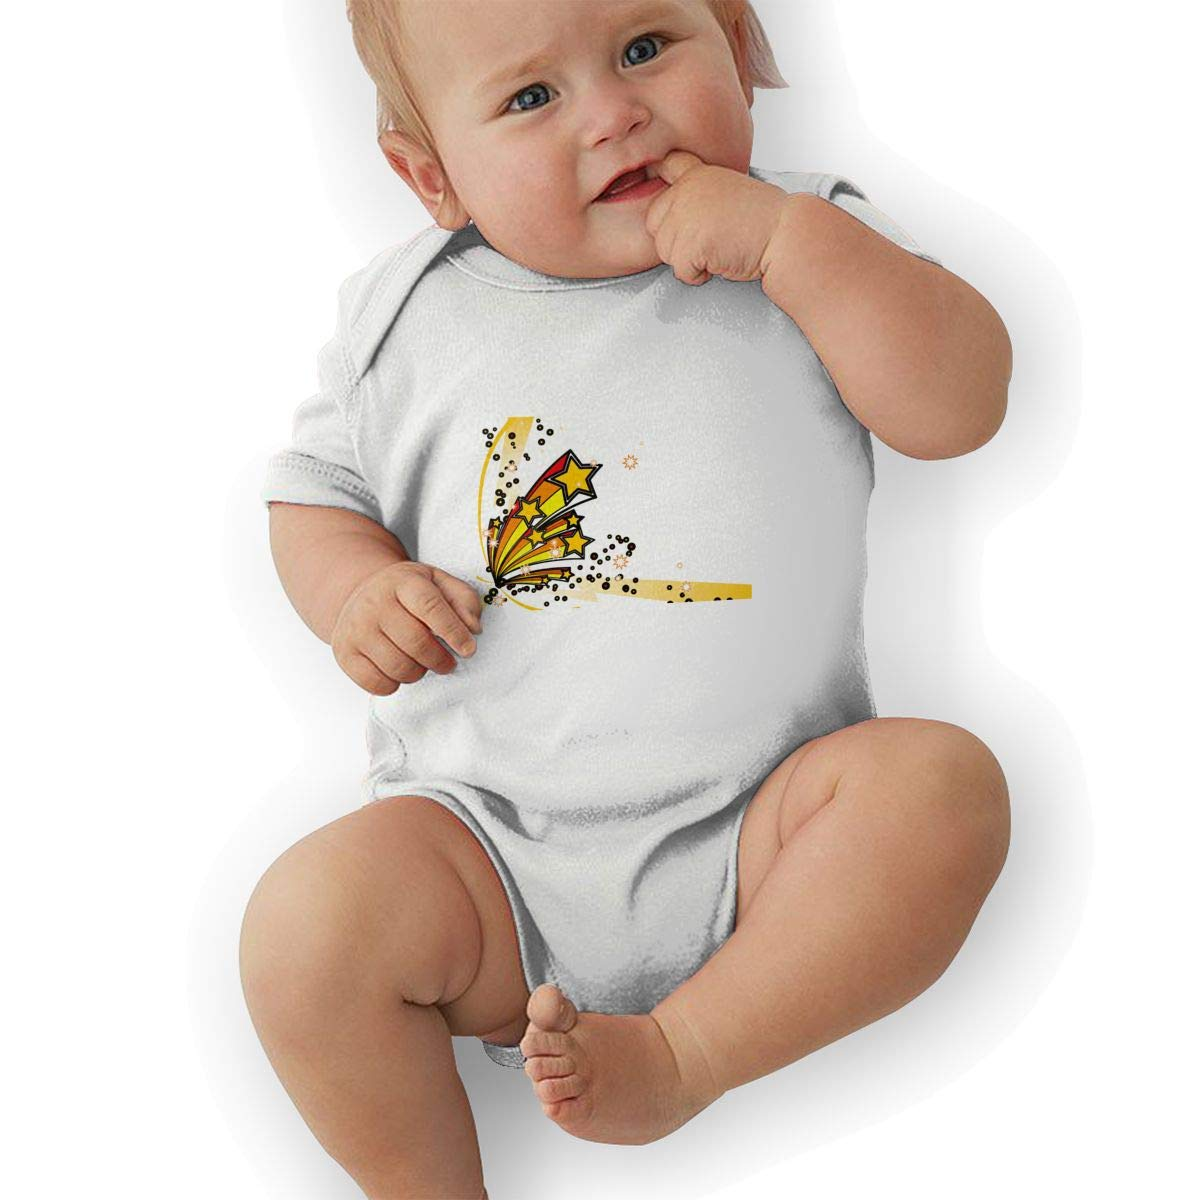 Infant Baby Boys Bodysuit Short-Sleeve Onesie Creative Stereoscopic Stars Print Jumpsuit Spring Pajamas